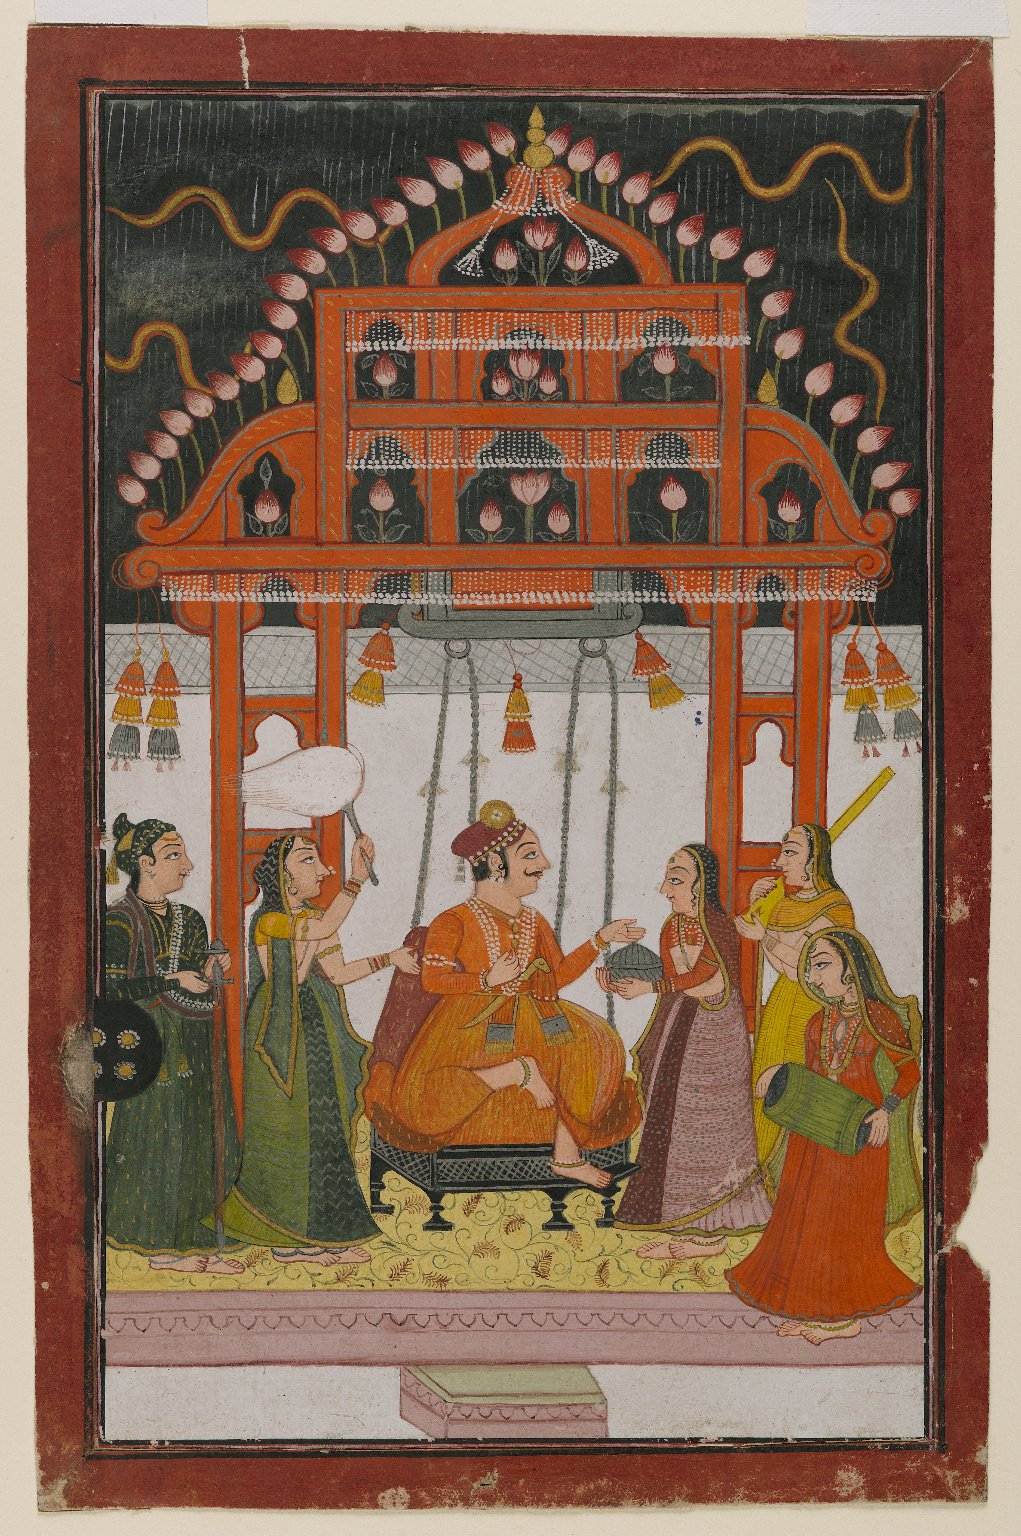 Hindola Raga, Page from a Dispersed Ragamala Series - Miniature Painting, India, Circa 1830